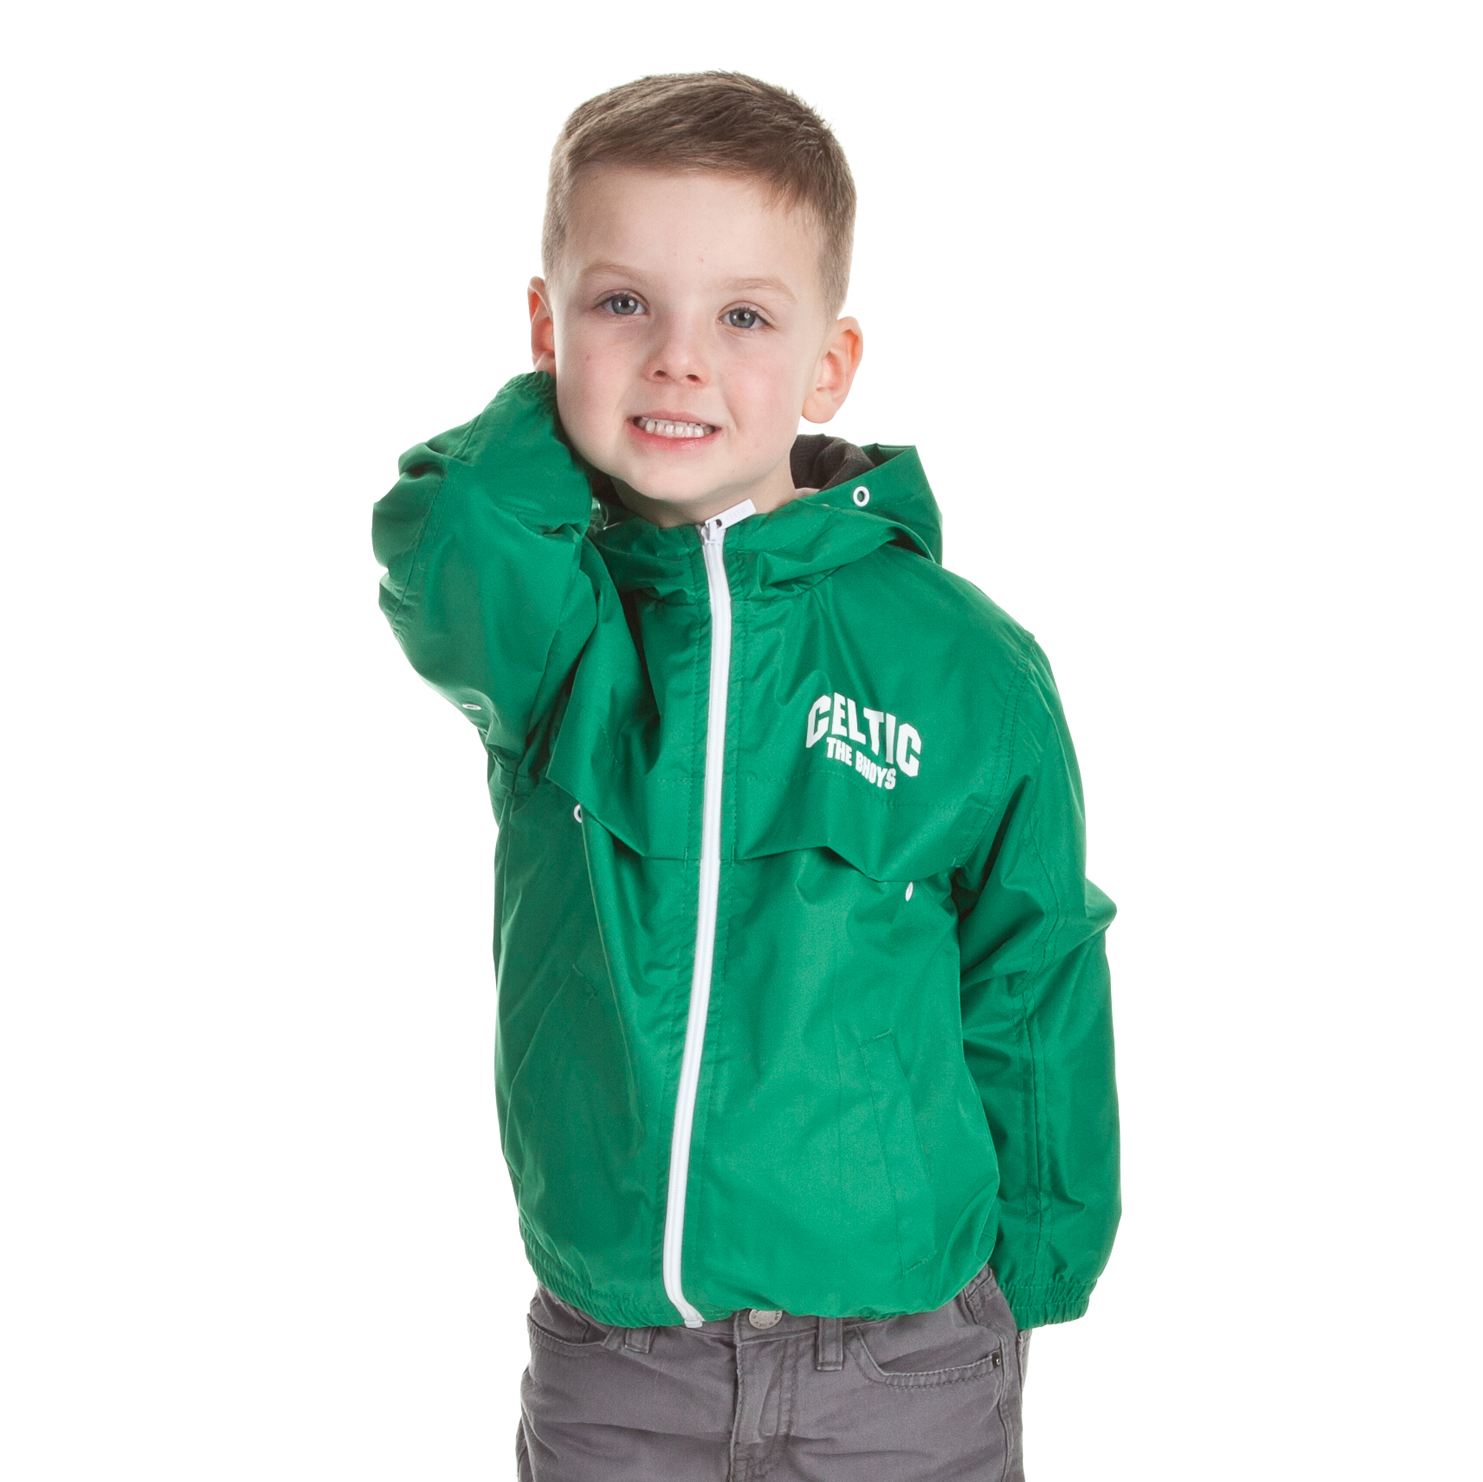 Celtic Essentials The Bhoys Hooded Shower Jacket - Tiller Green - Boys